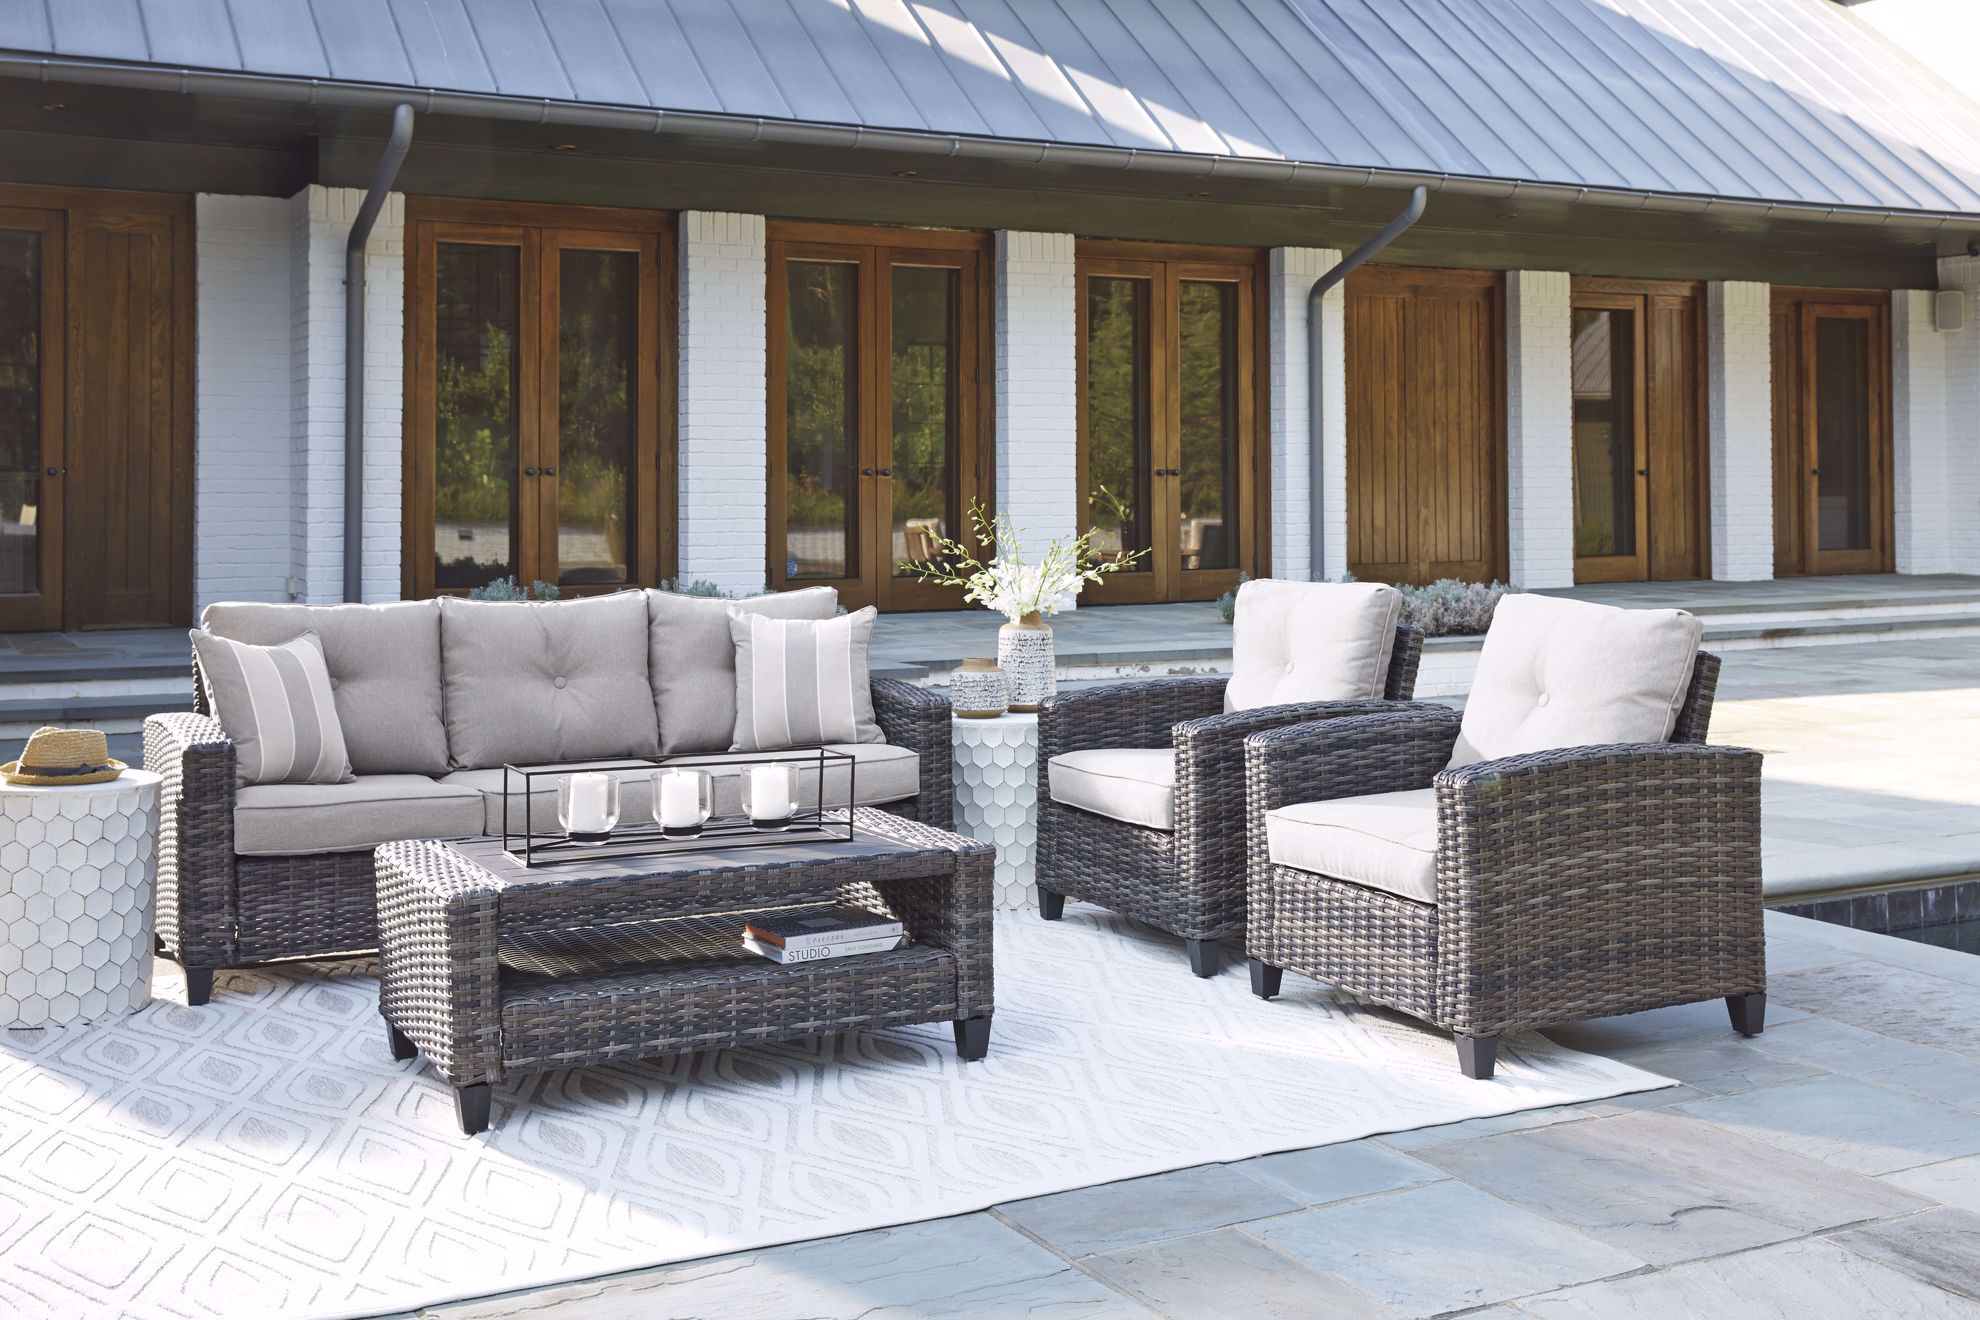 Picture of Cloverbrooke Sofa, 2 Chairs, and Cocktail Table Patio Set